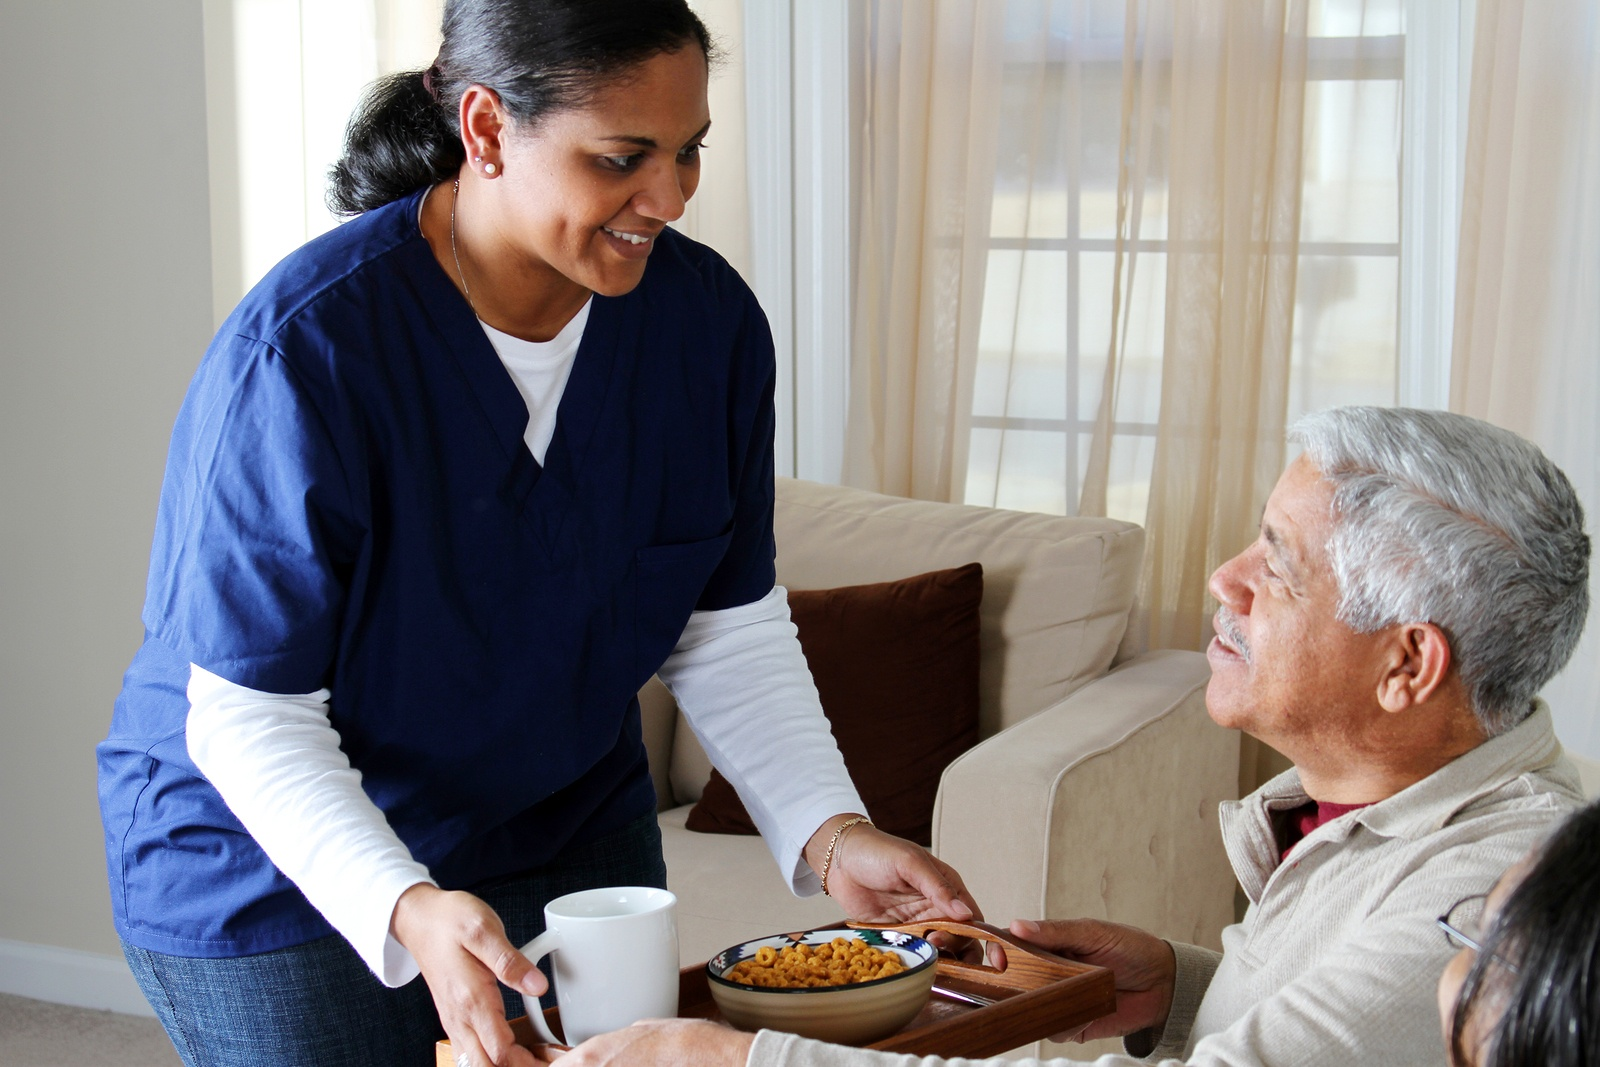 A Patient's Perspective: Things I wish my Eldercare Provider Knew